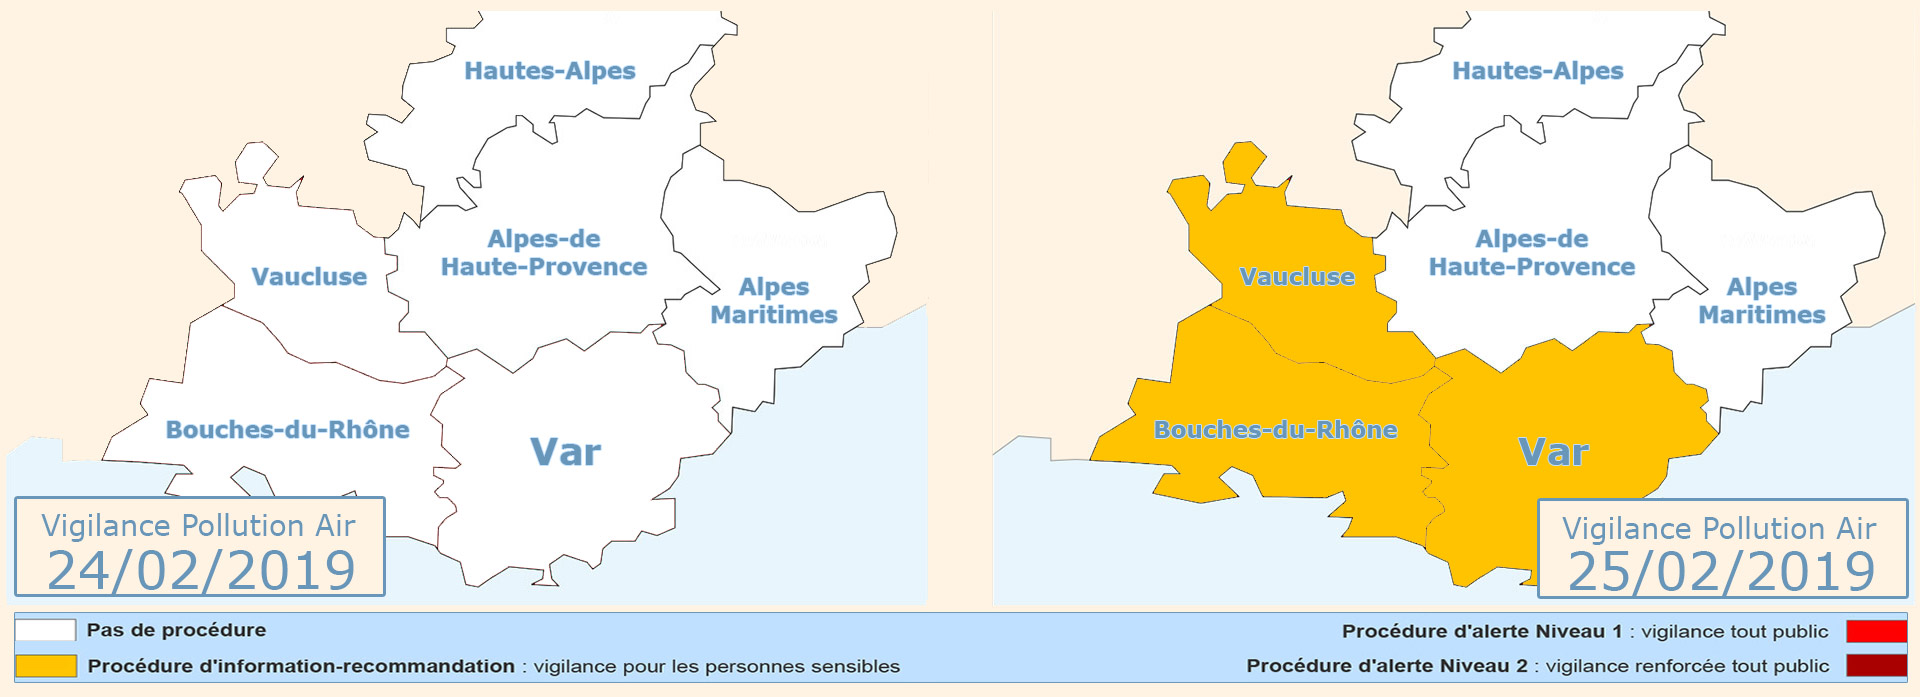 Var: Vigilance Pollution pour le 25/02/2019 -